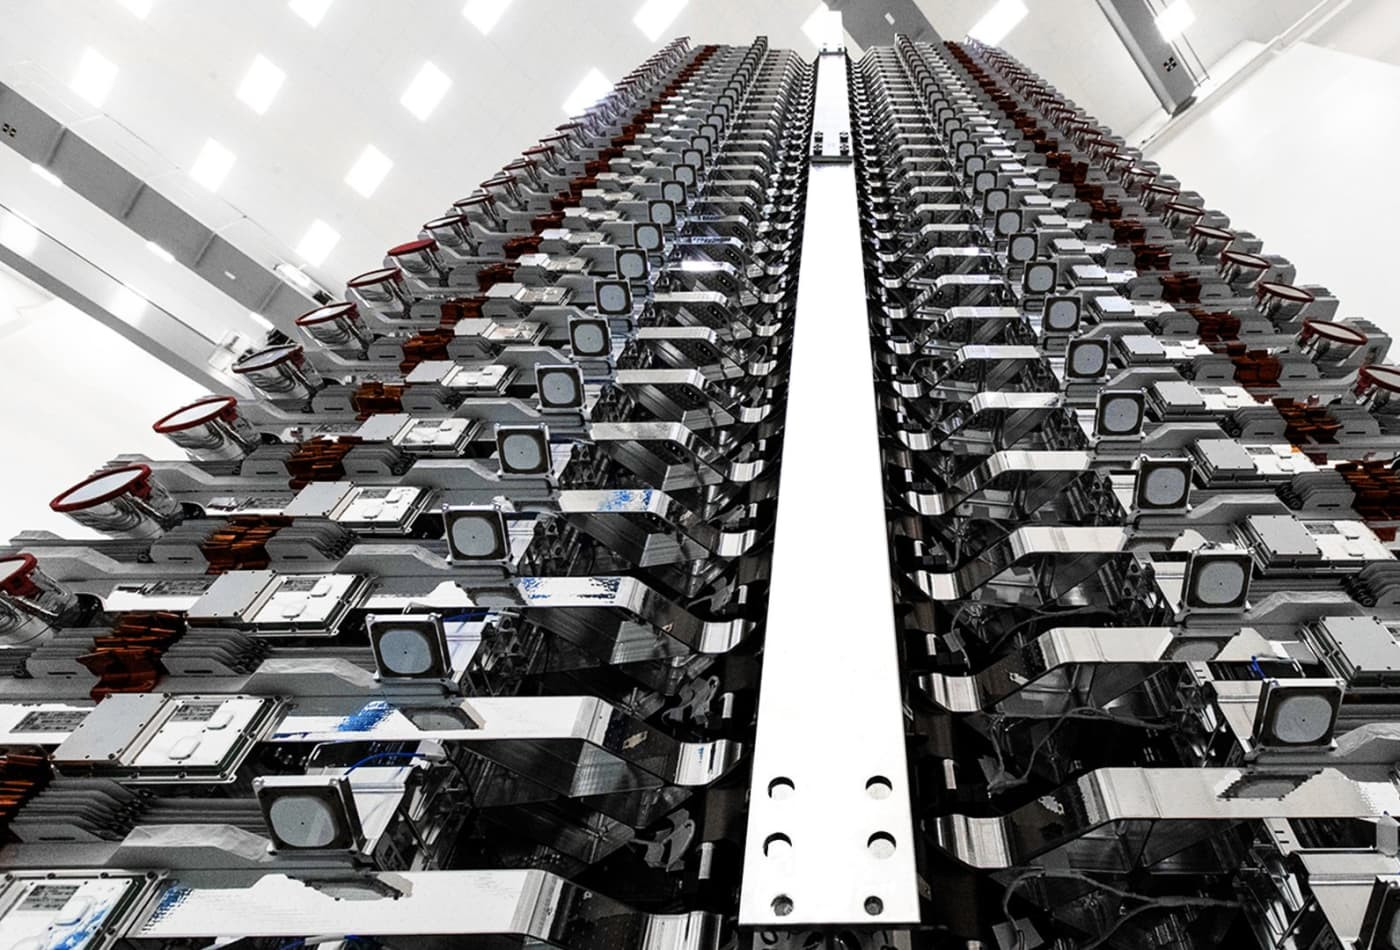 SpaceX is manufacturing 120 Starlink internet satellites per month